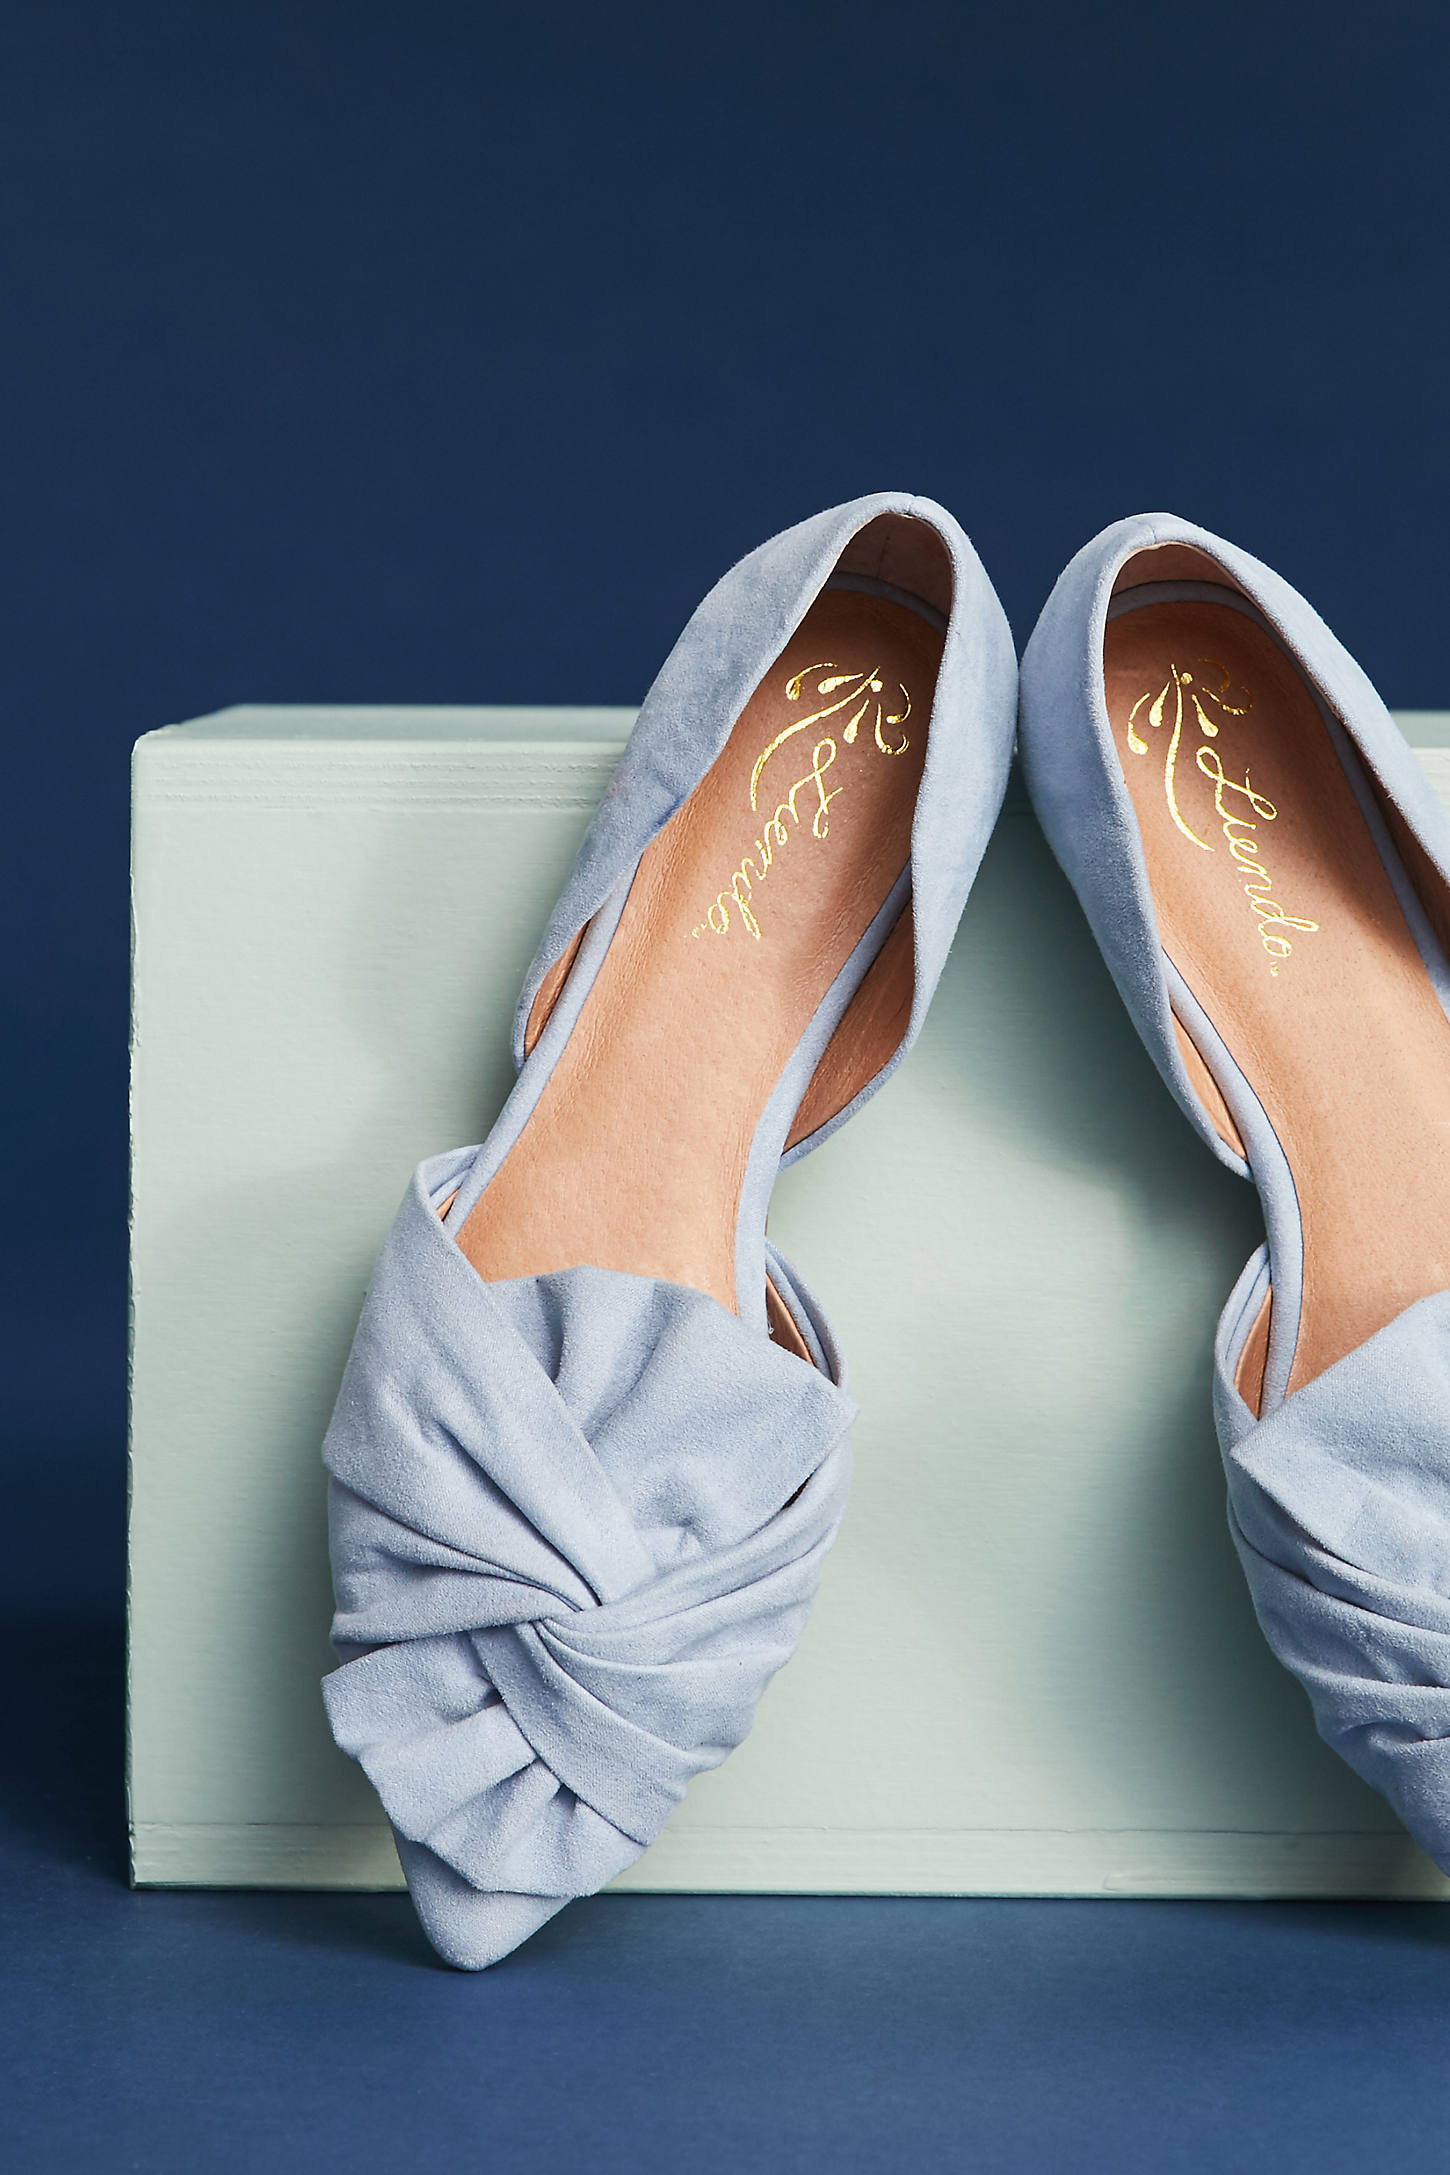 Liendo by Seychelles Knotted Bow Flats